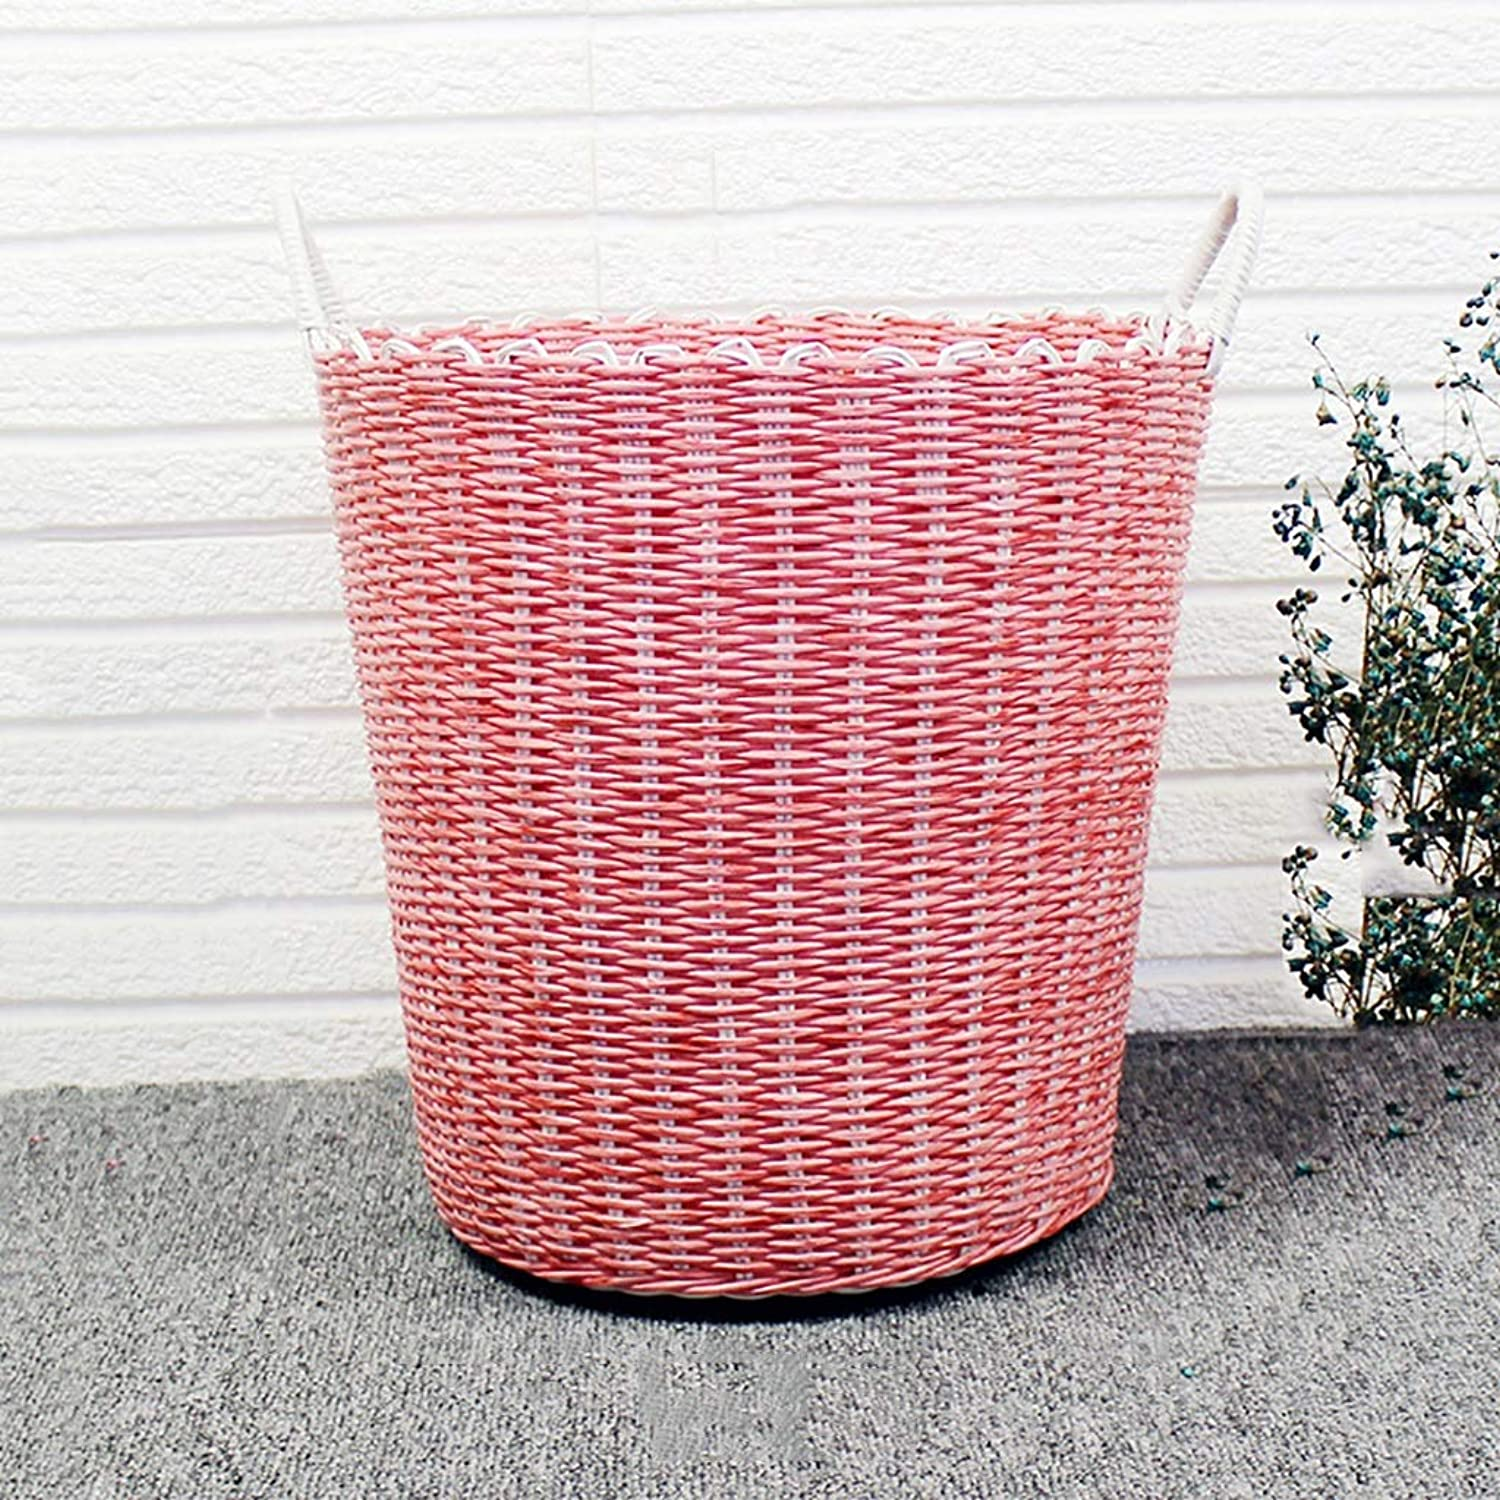 FANGFA Storage Baskets Plastic Hand Weaving Living Room Bedroom Dirty Clothes Toy Finishing Bucket (color   RED, Size   DH 40  38cm)